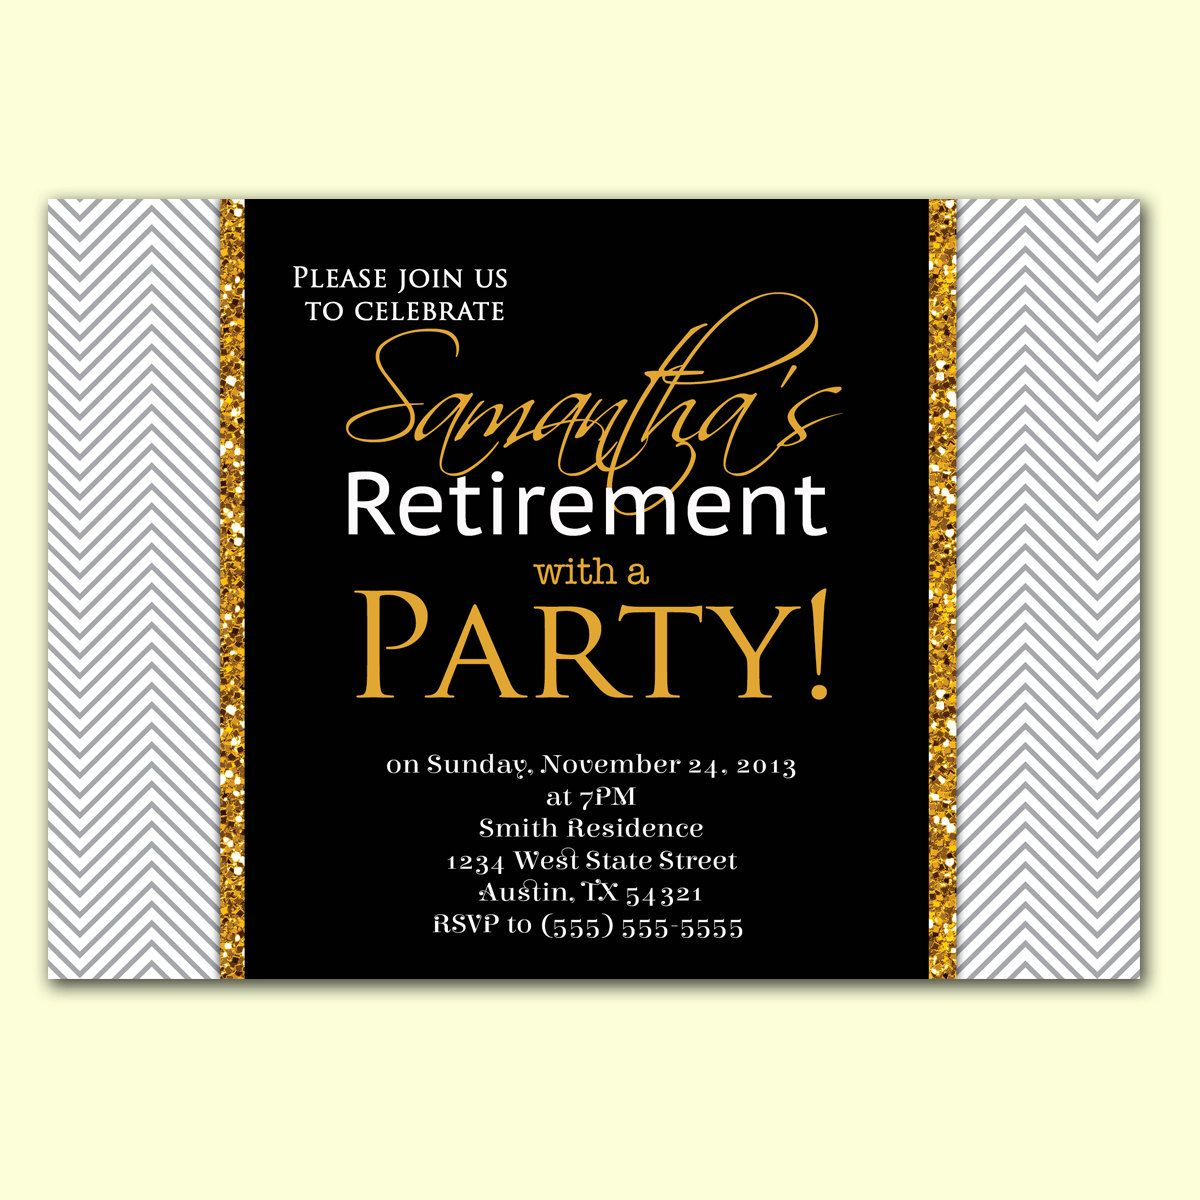 party-invitation-retirement-party-invitations-with-gold-blink-blink ...